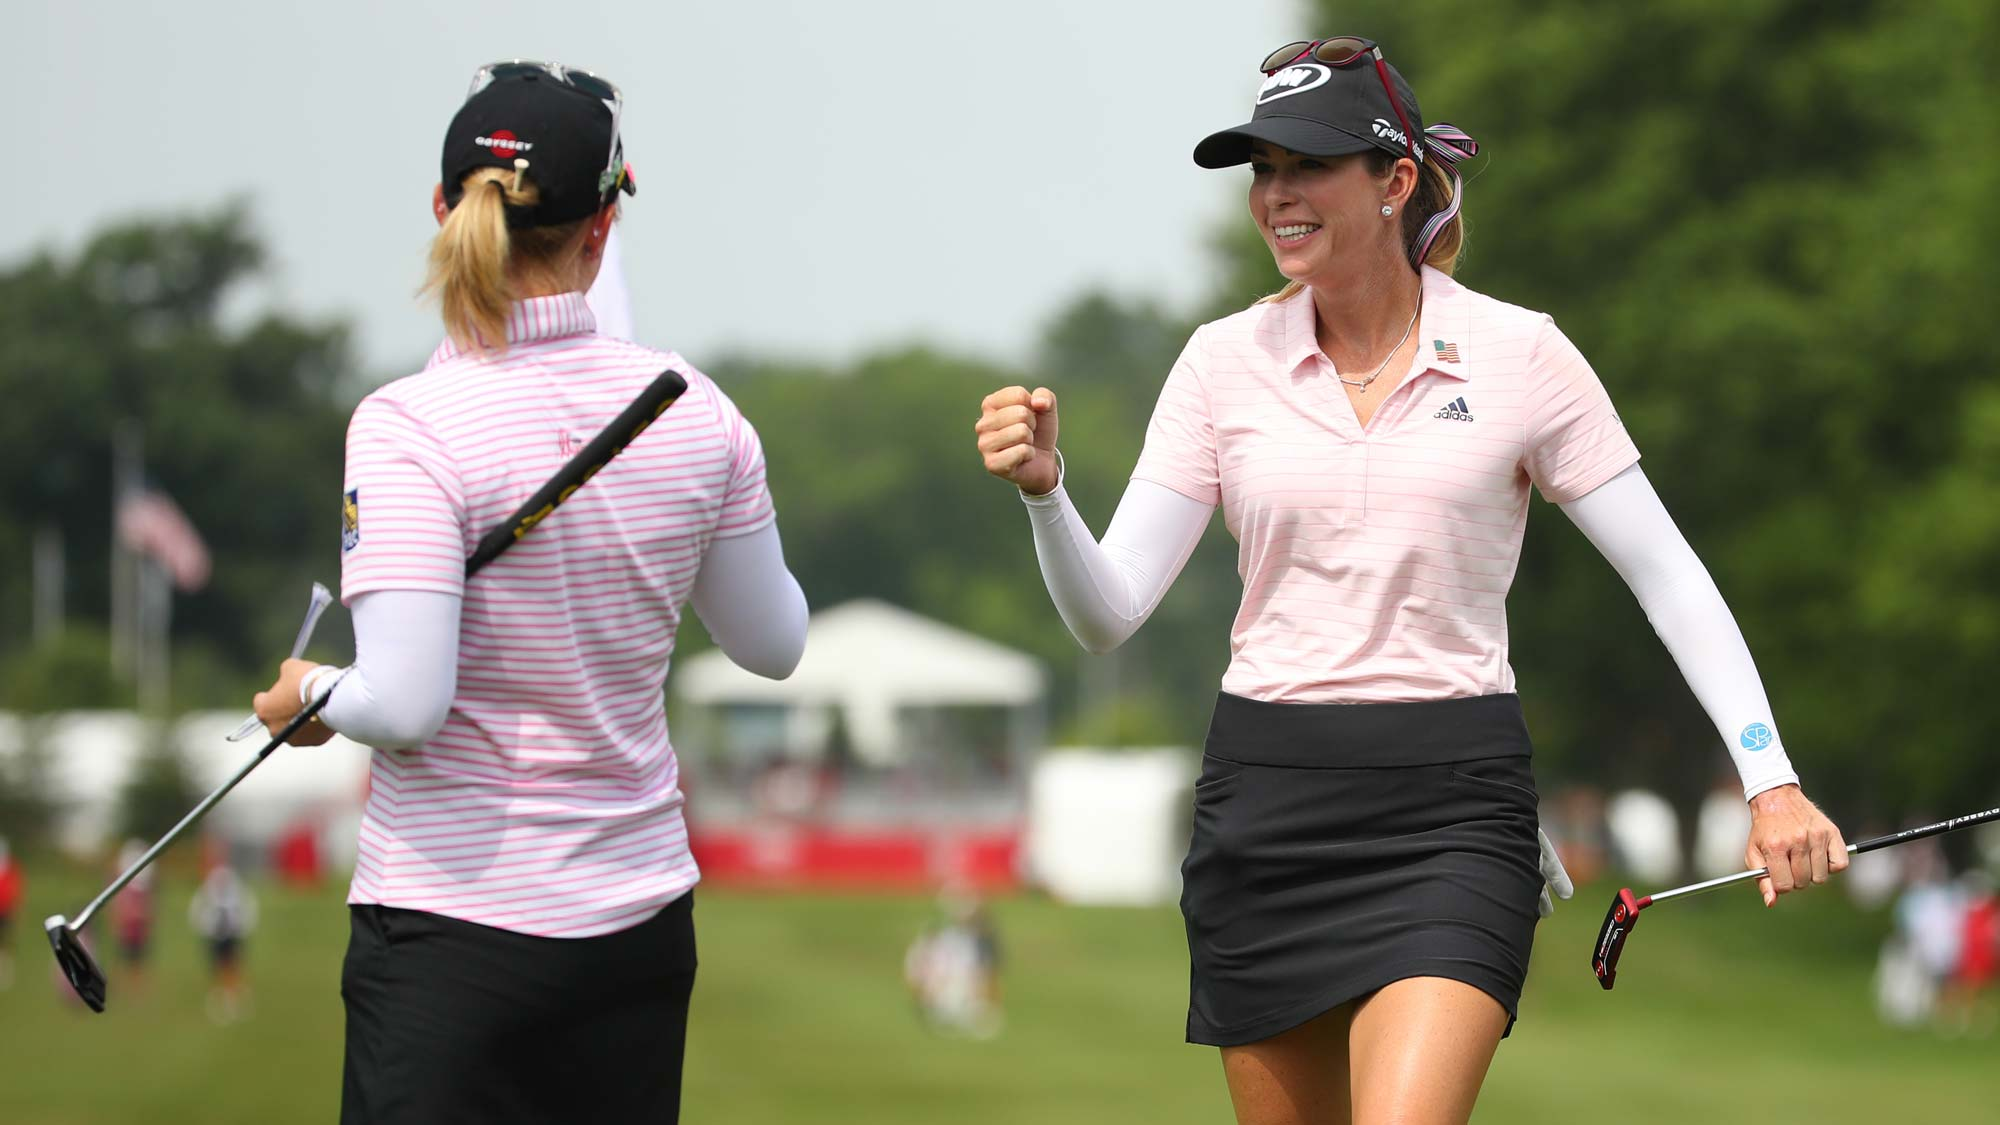 Teammates Paula Creamer (R) and Morgan Pressel celebrate on the first green during round two of the Dow Great Lakes Bay Invitational